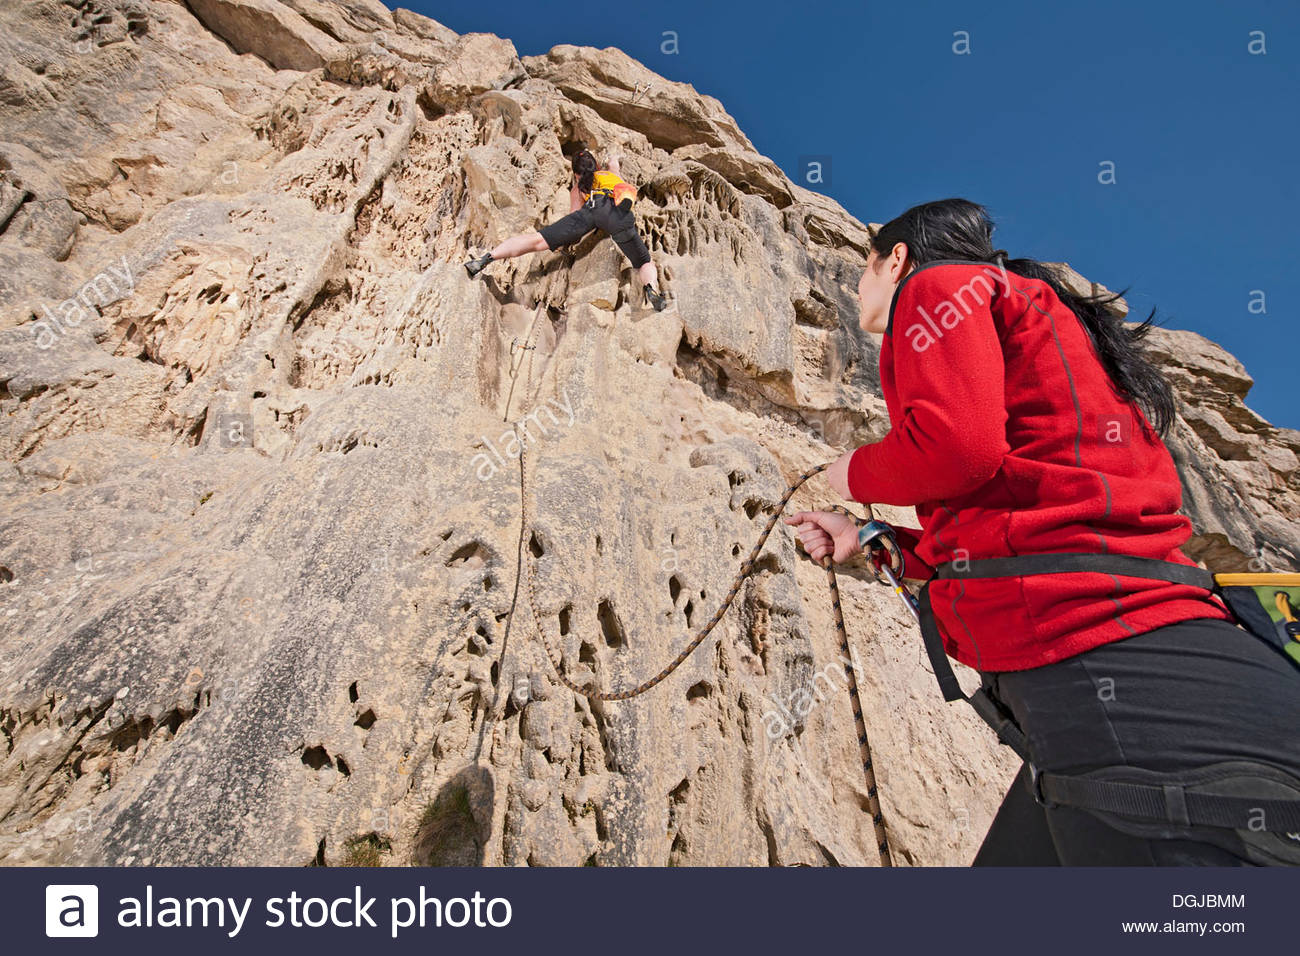 Two female rock climbers on cliff - Stock Image